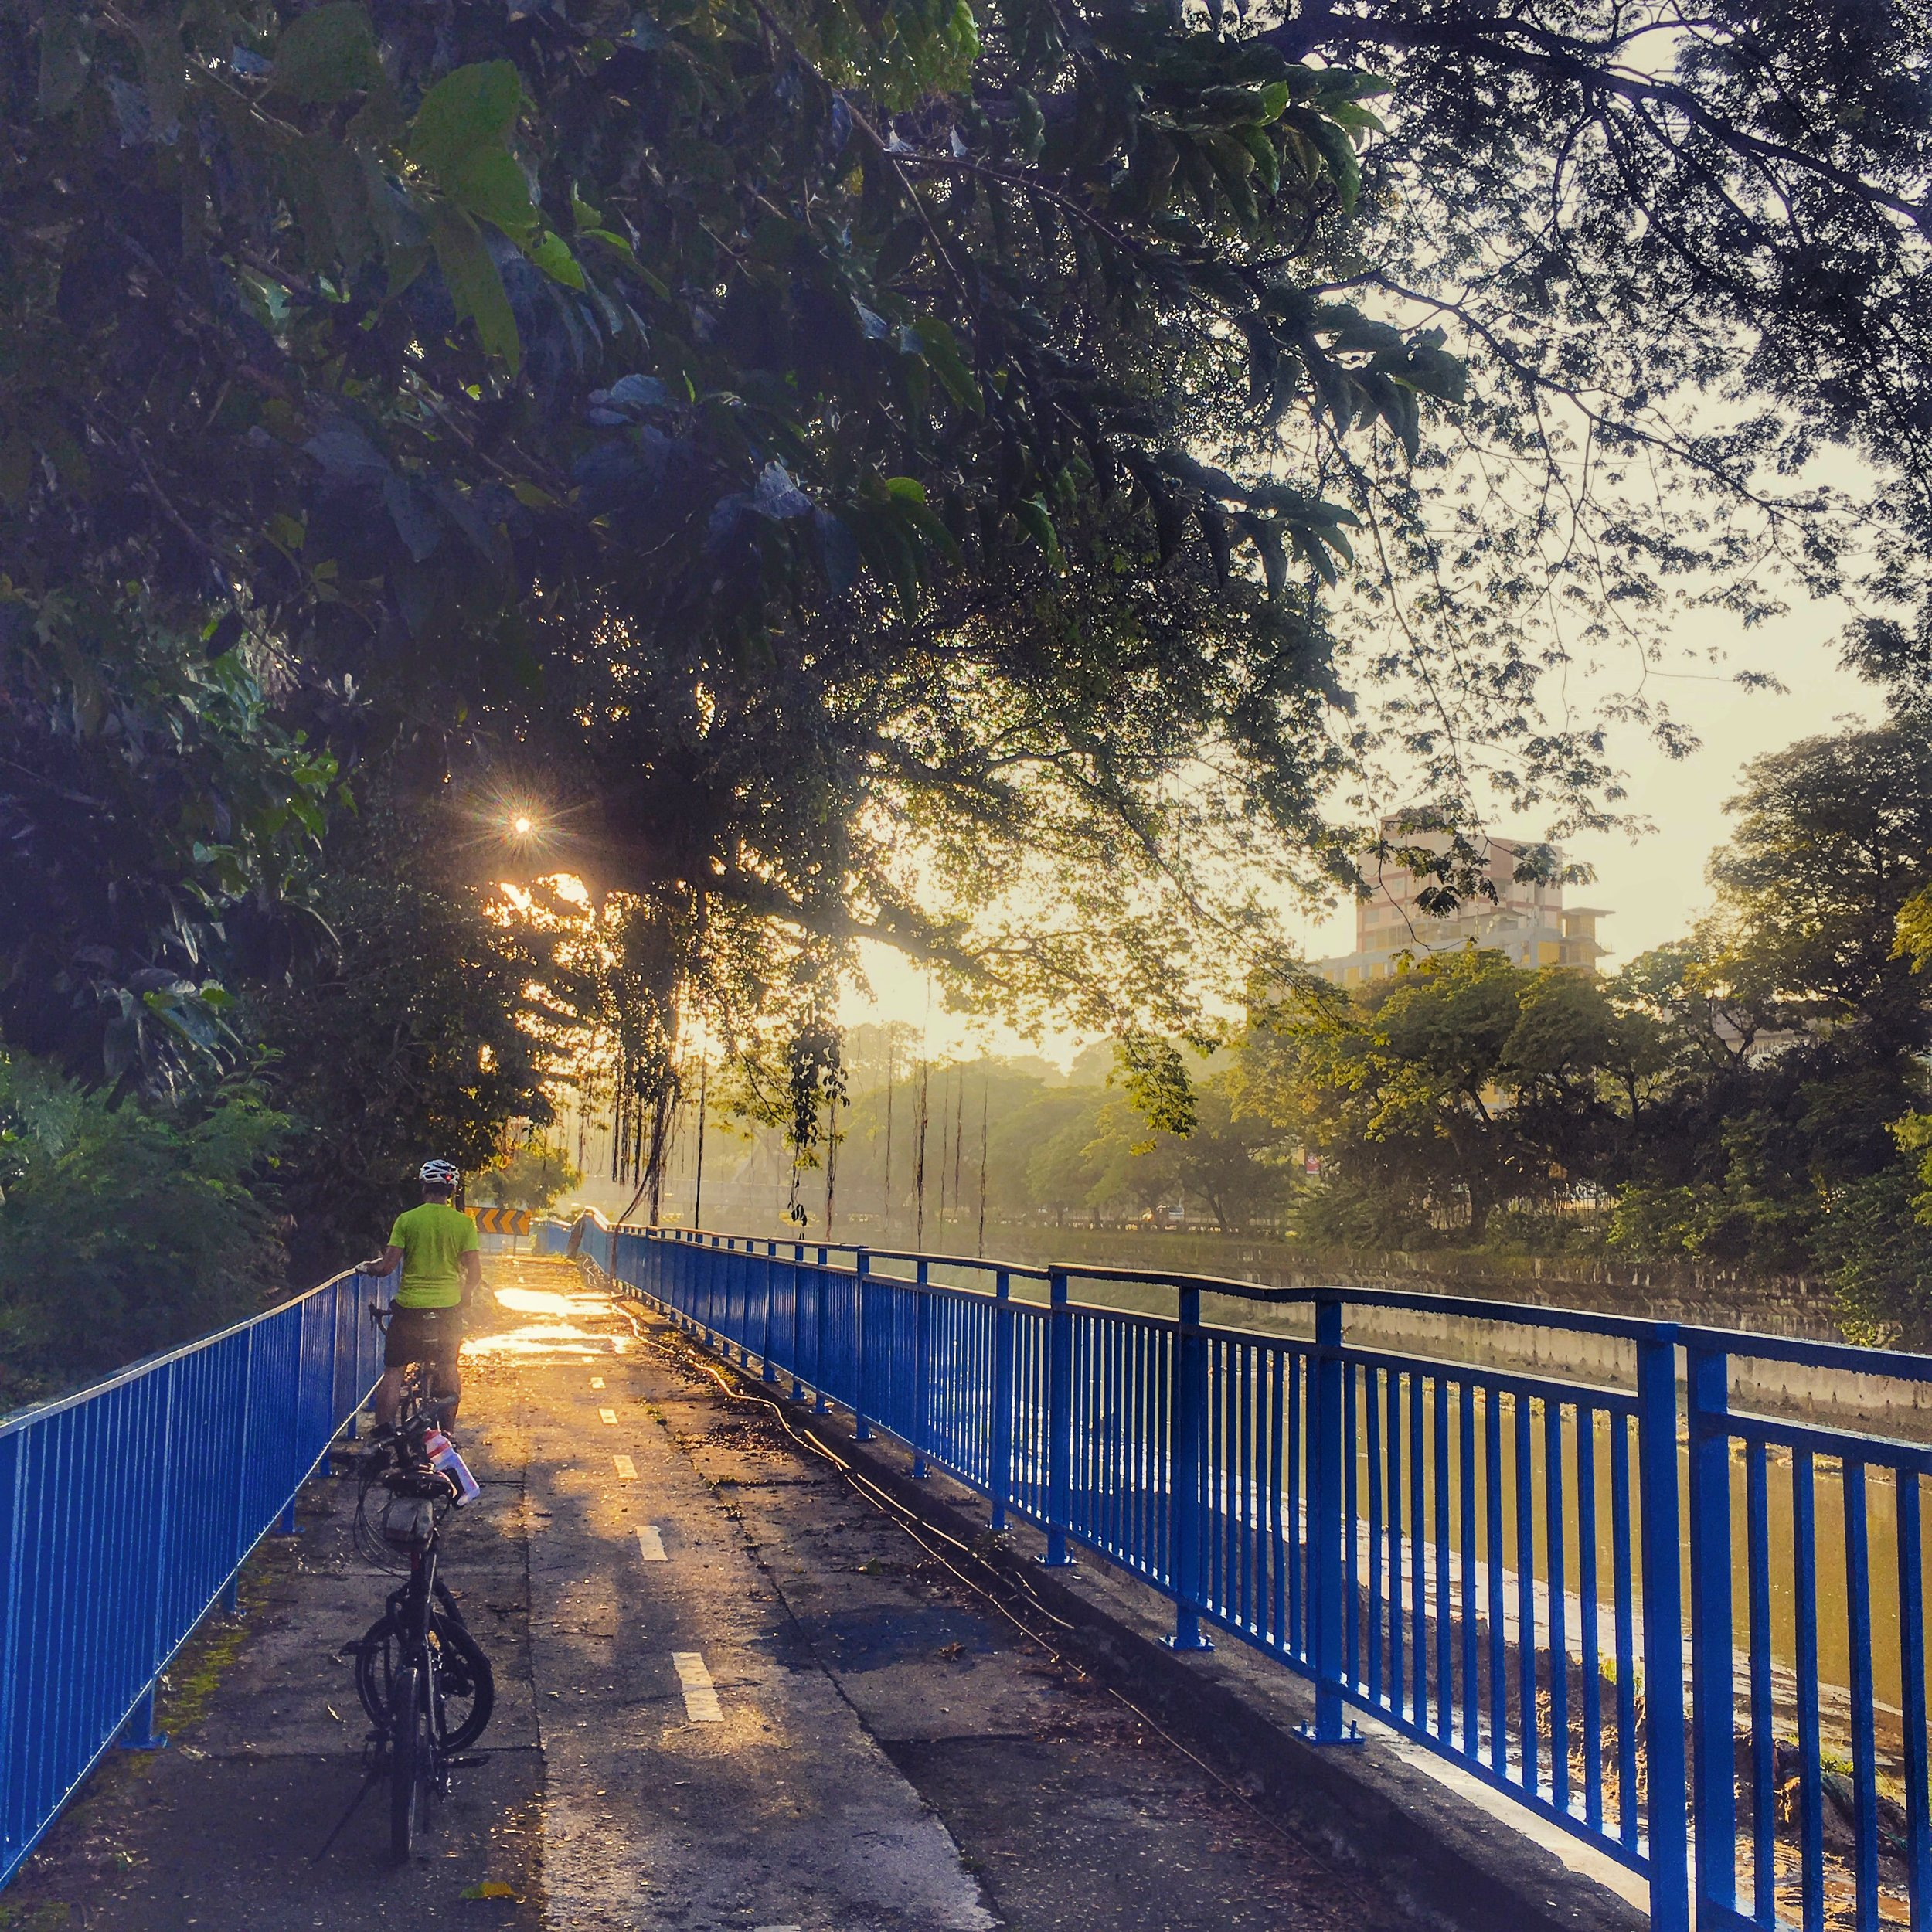 Early morning on the bike path.